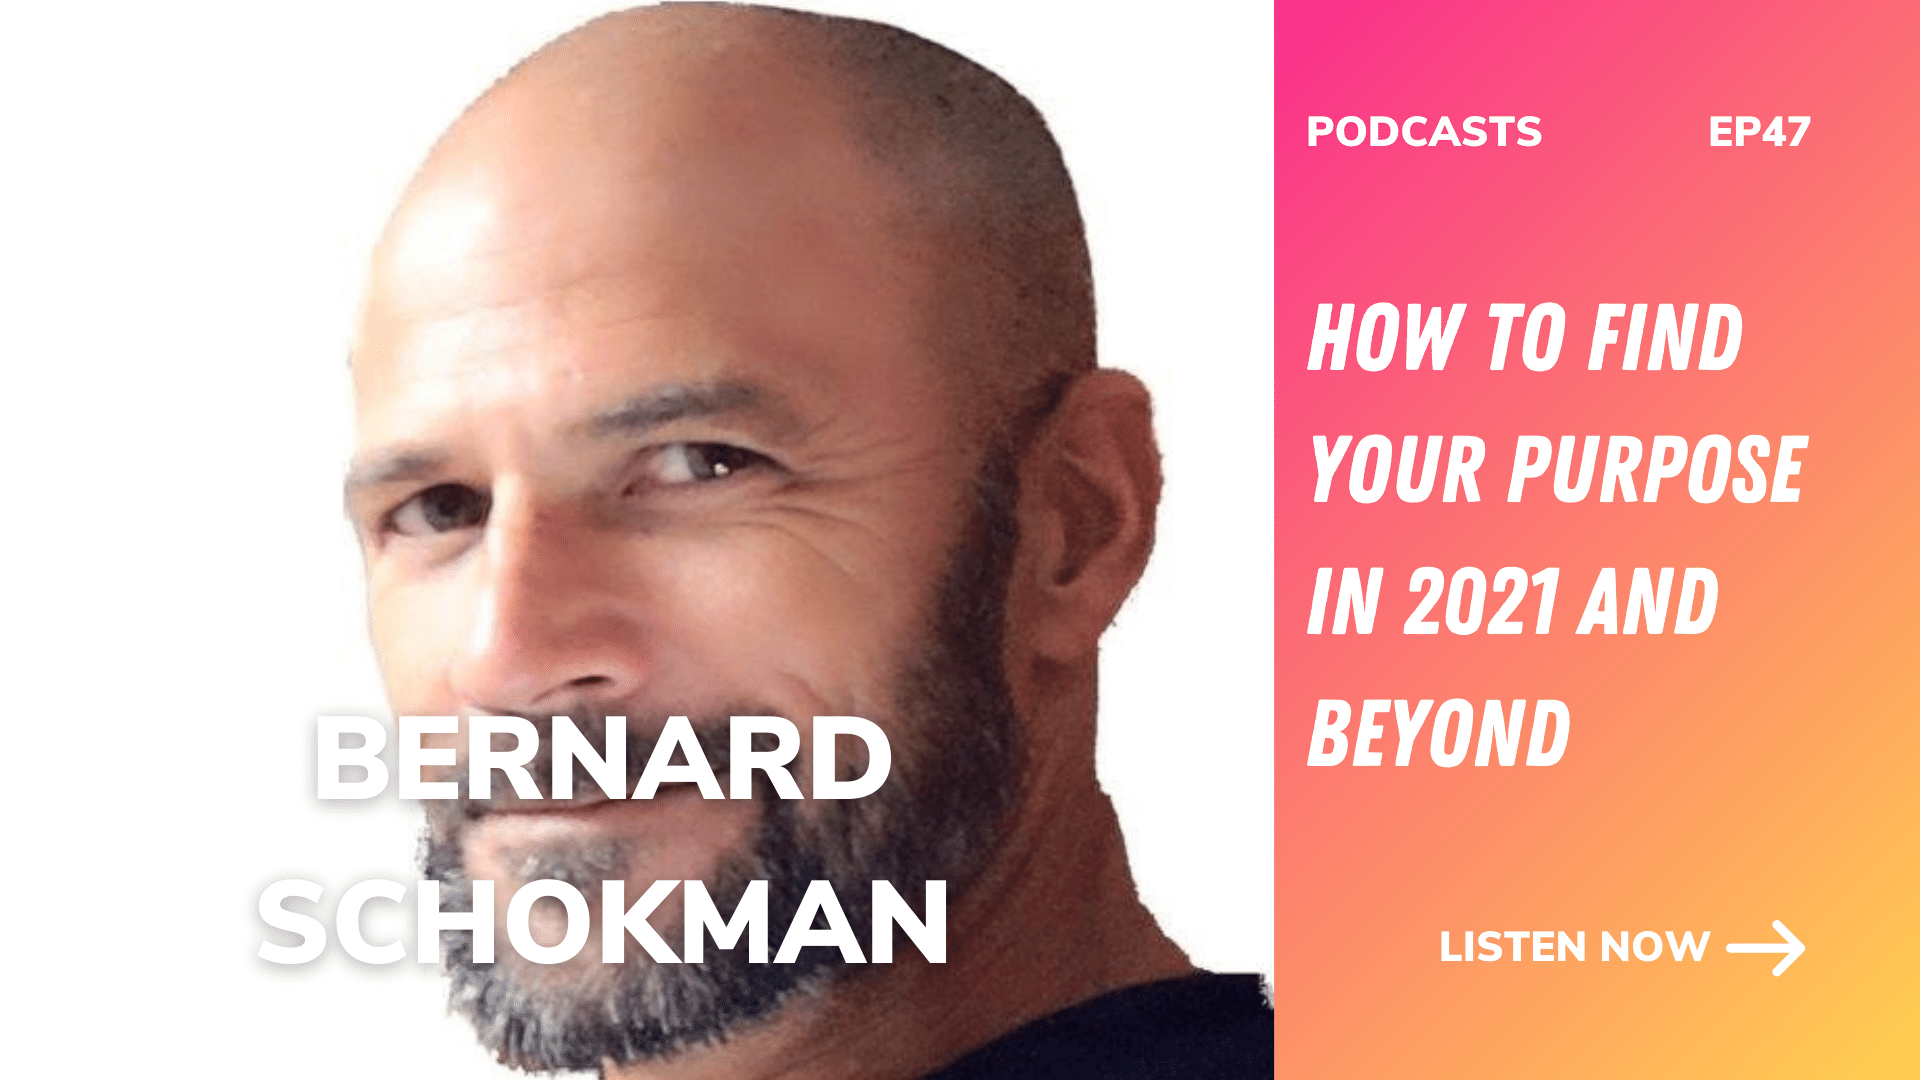 Ep 47 | How to find your purpose in 2021 and beyond | Bernard Schokman, The Workshop Mechanic, Finding your purpose